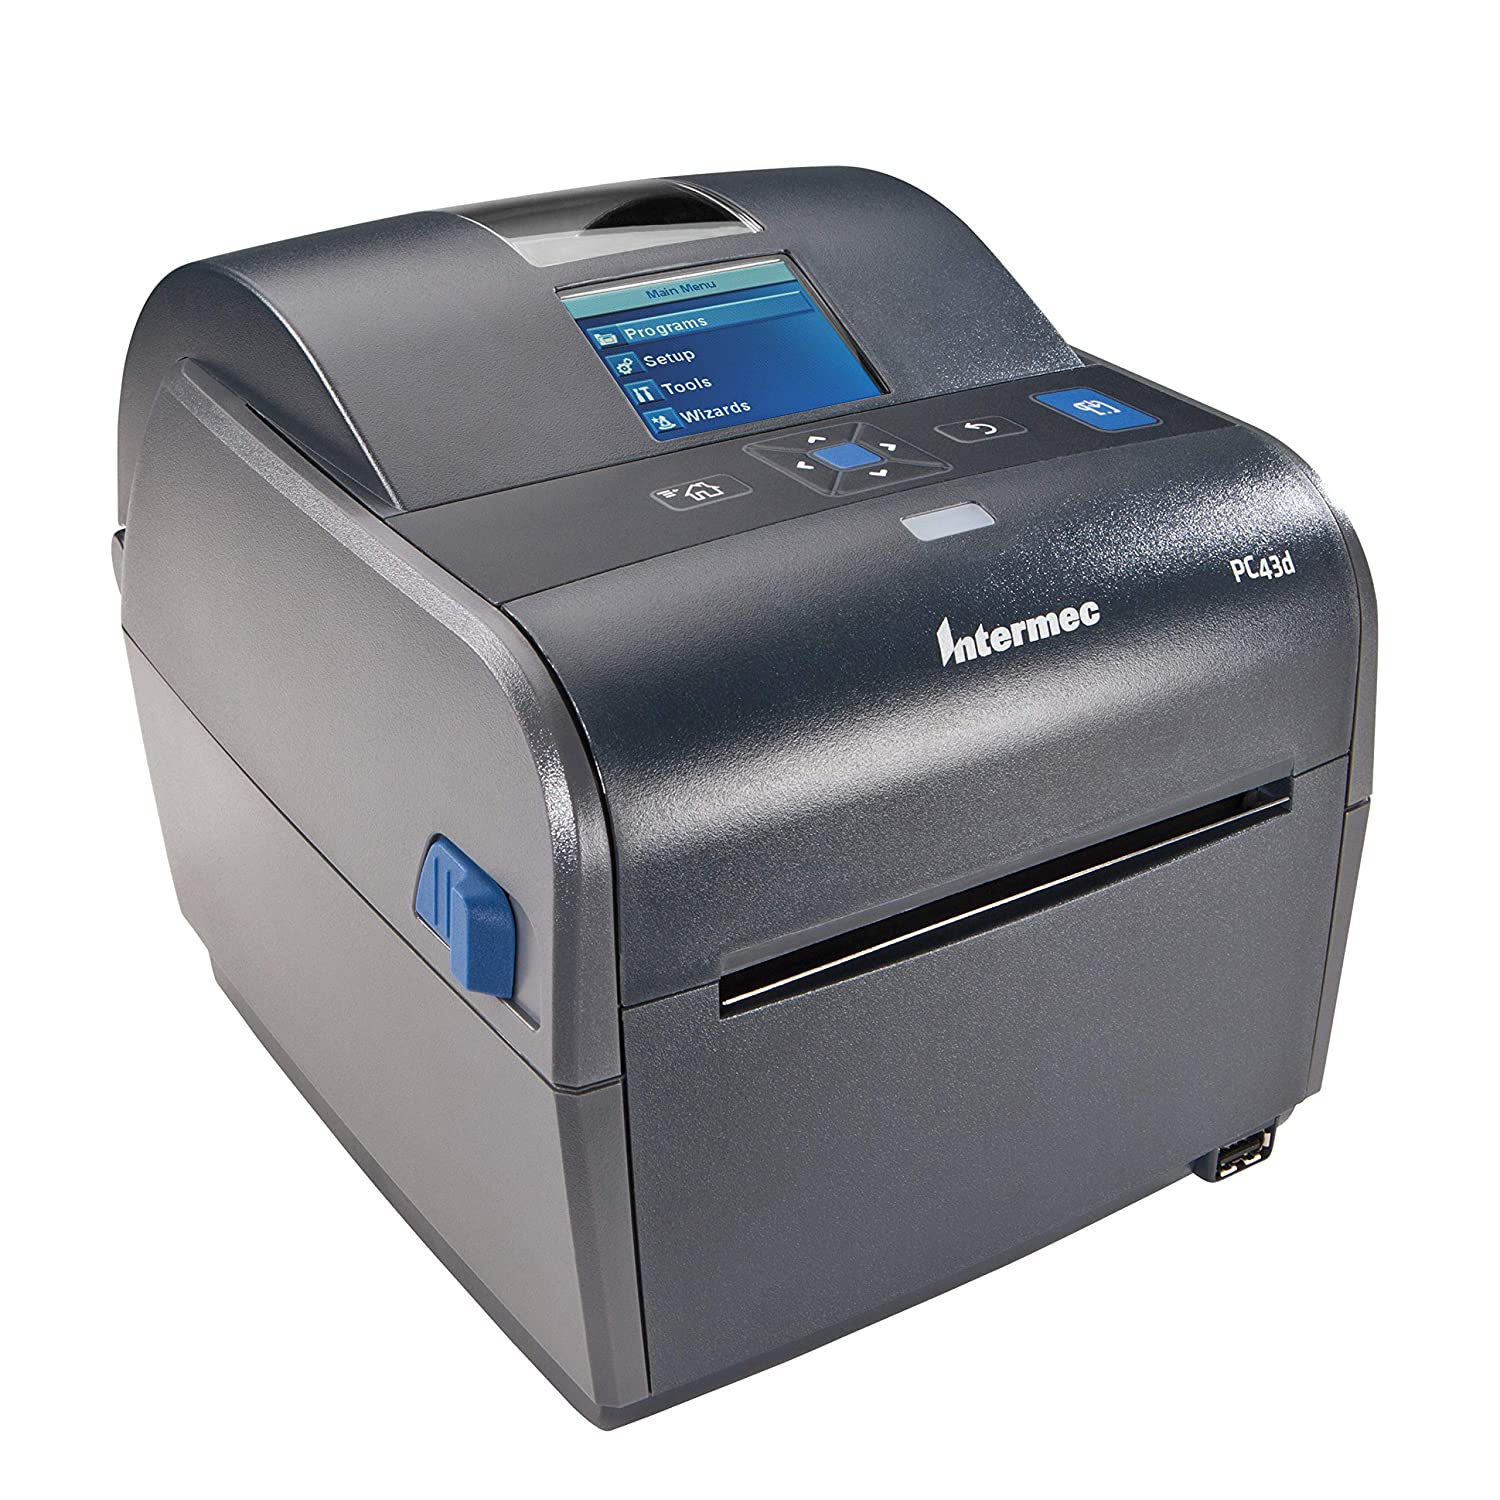 Honeywell PC43d Desktop Direct Thermal Label Printer with LCD Display and USB, Easy-to-Use Barcode Label Printer